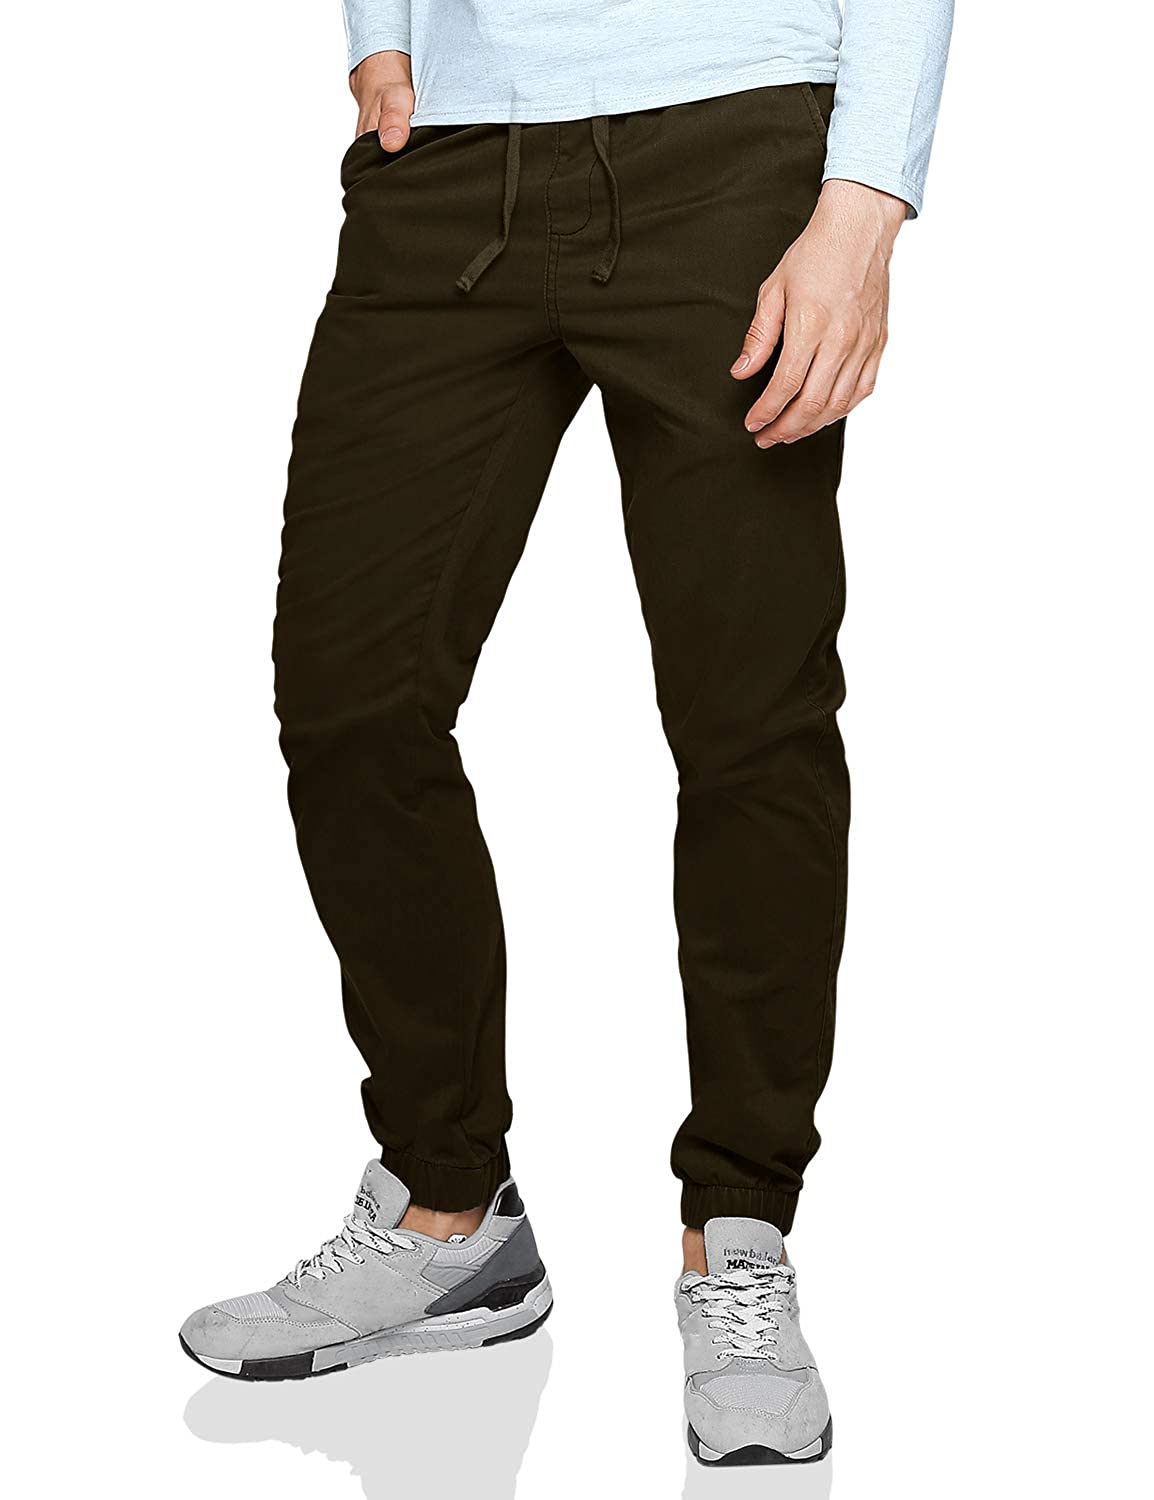 6d68523f99c3 Match Men's Chino Jogger Pants at Amazon Men's Clothing store: